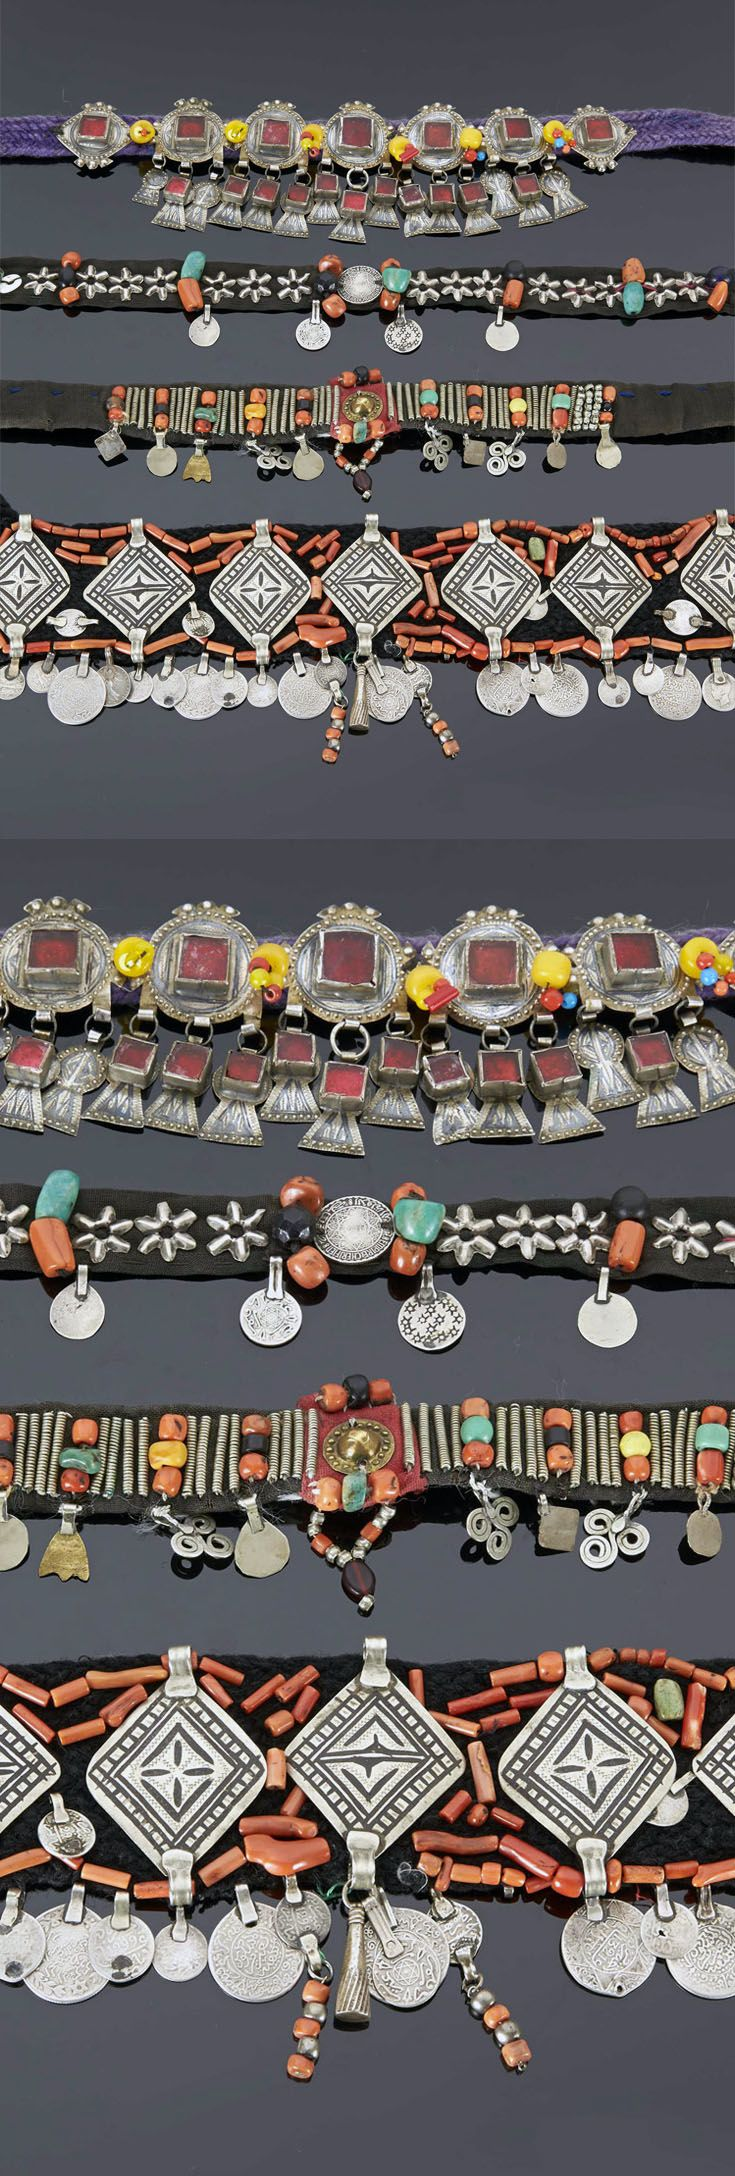 Morocco | Four headbands from the Atlas region (Anti, Middle and Central); leather, cotton, coral, amazonite, silver, stones and glass cabochons | 434€ ~ sold (May '15)